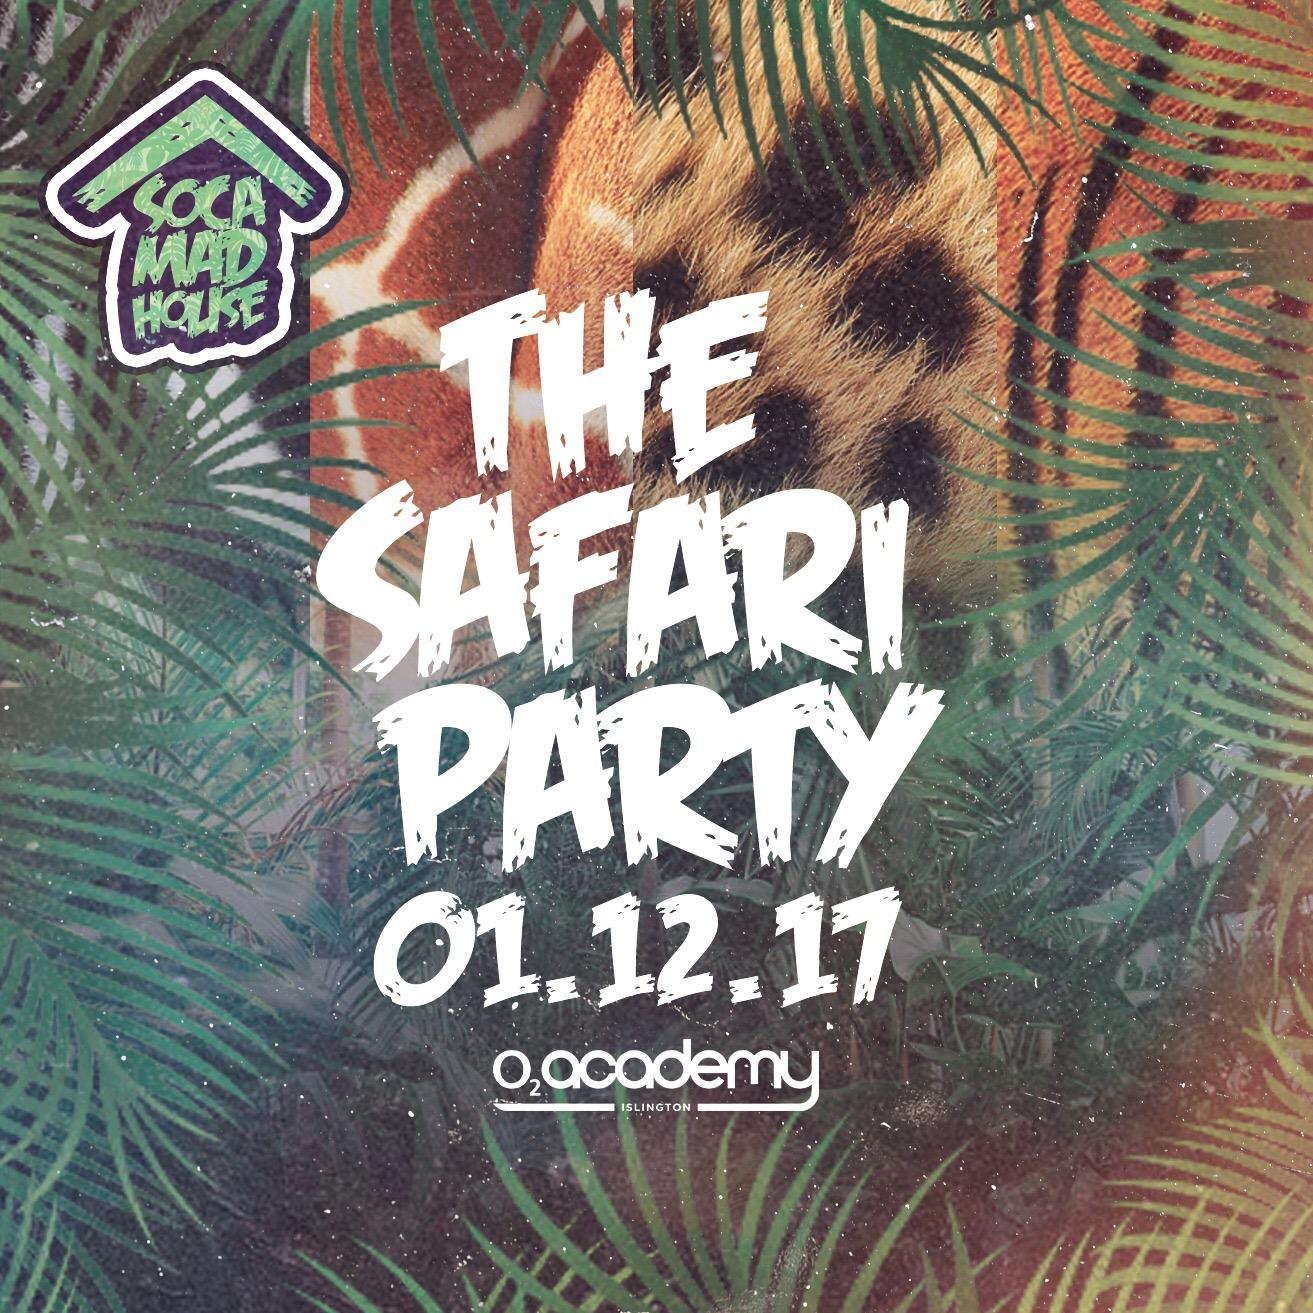 Soca Madhouse : The Safari Party | Blacknet UK